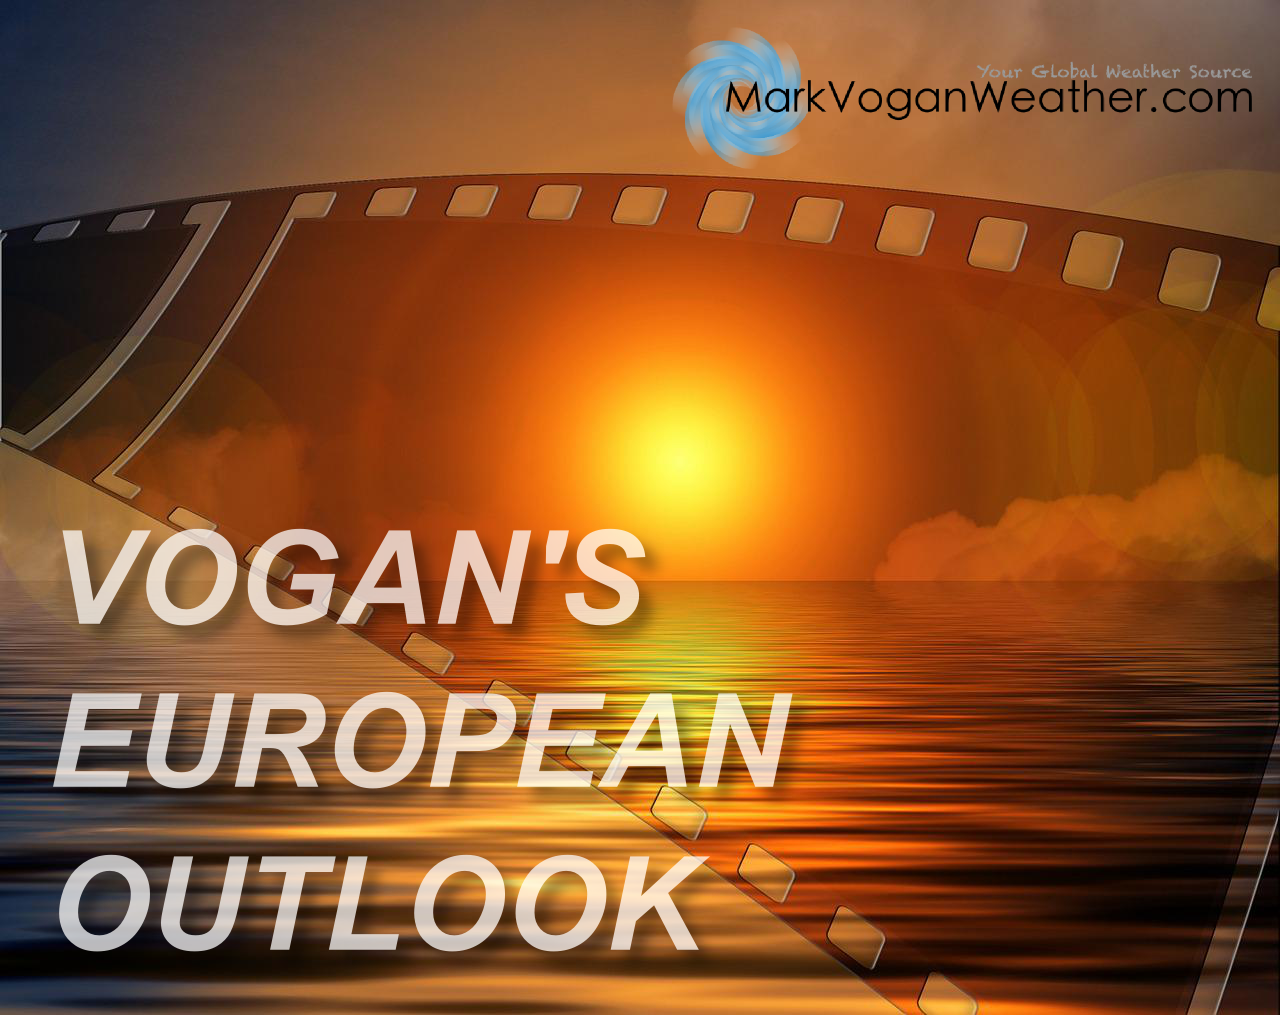 FRI 12 SEP: VOGAN'S EUROPEAN OUTLOOK